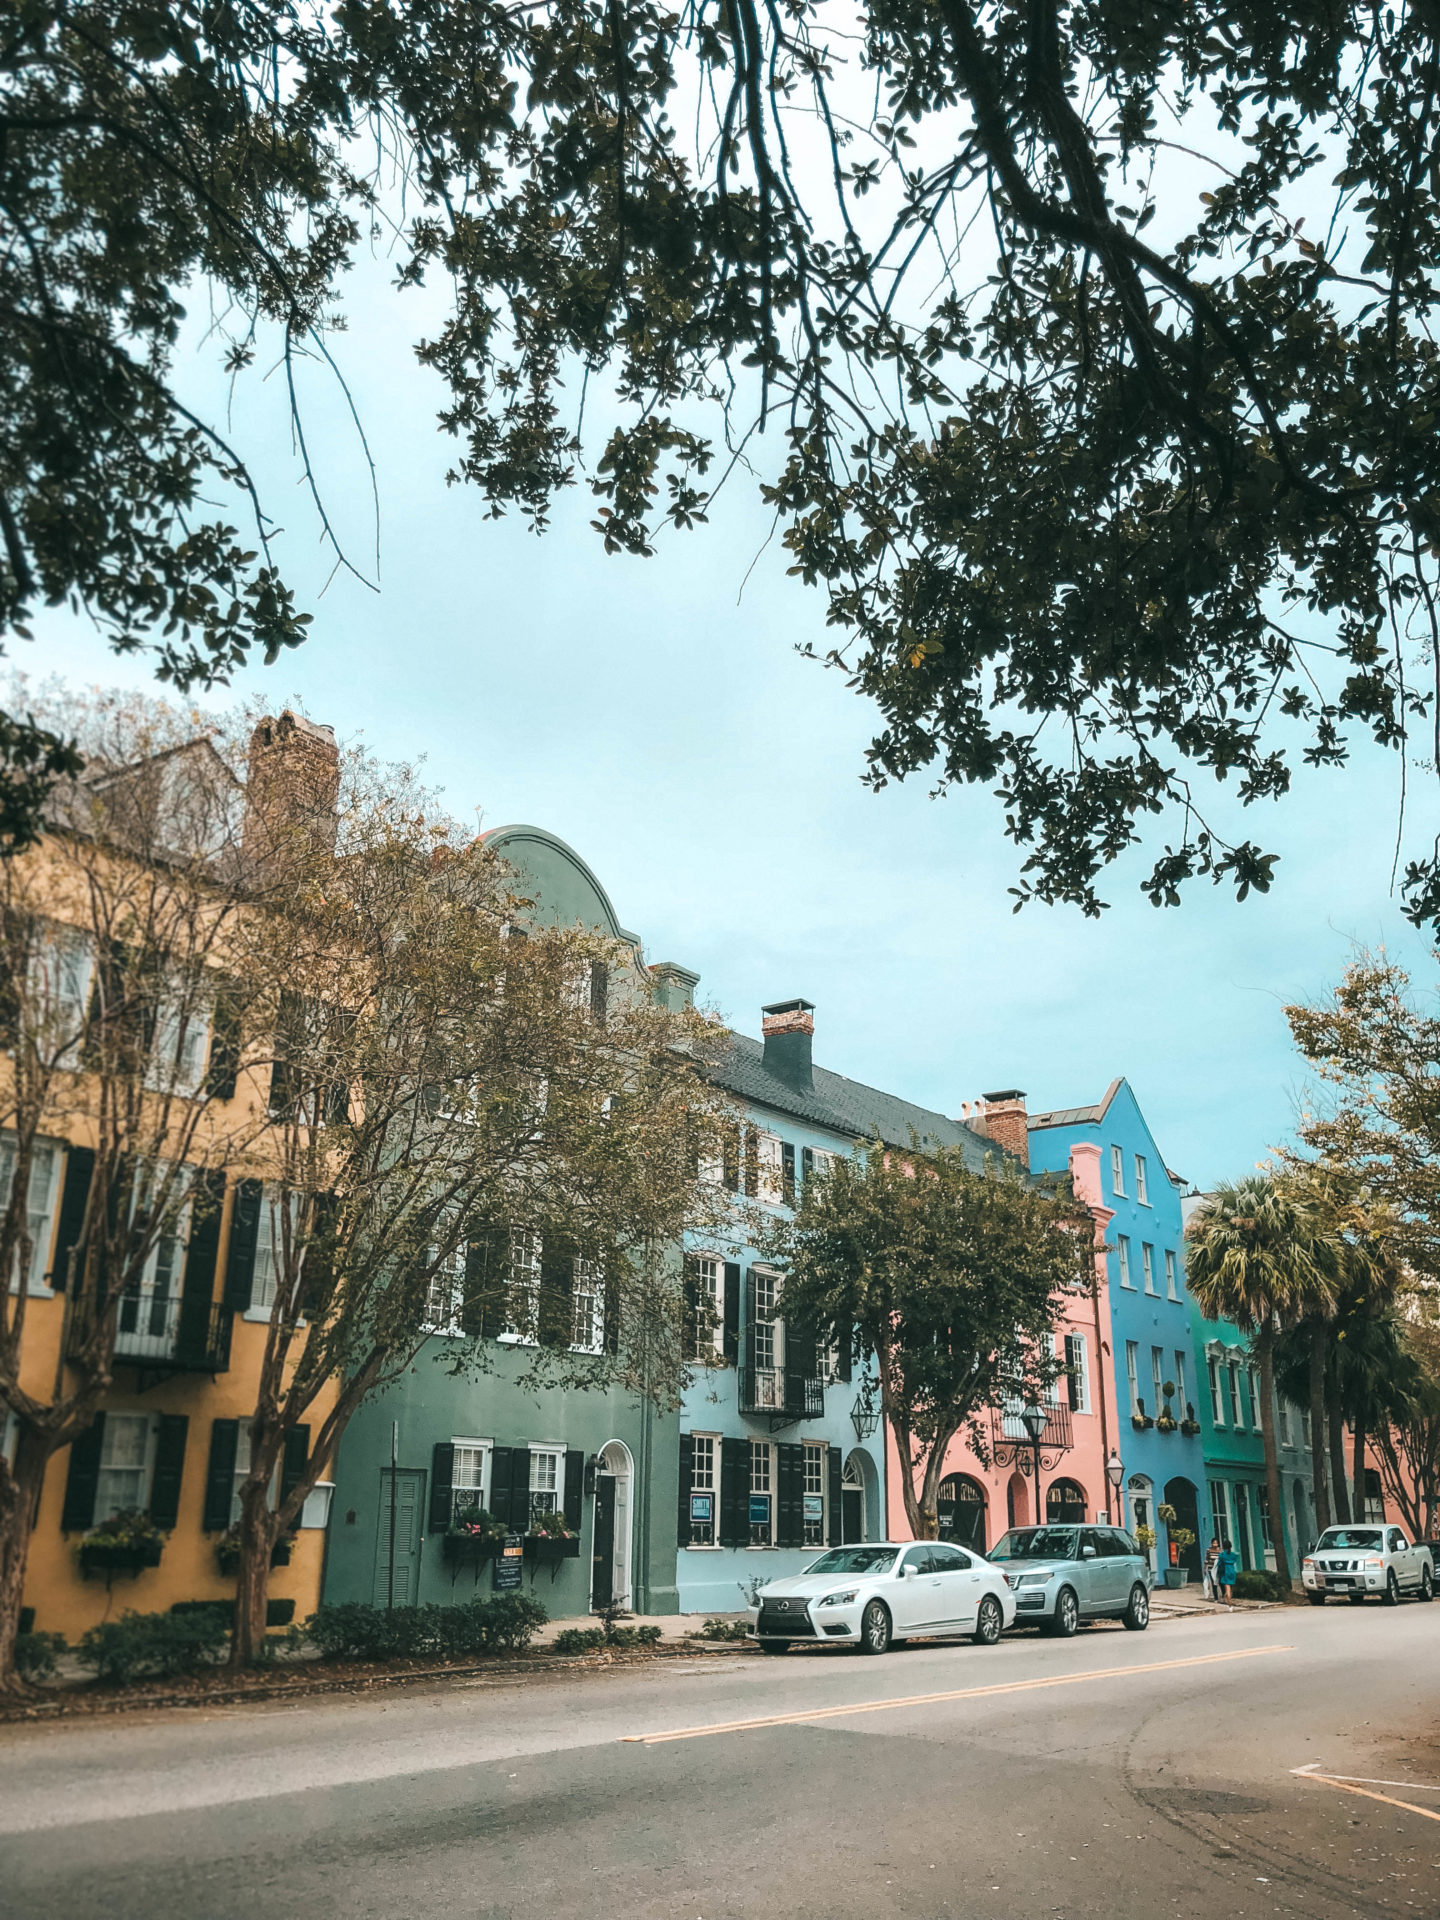 #Charleston #CharlestonSC #CharlestonVacation #volvocars #NewS60 #Middletonplace #southernplantation #helicoptertour #rainbowrow #thedewberry | Volvo | A Weekend in Charleston: the Best Things to Do featured by top Austin travel blogger Dressed to Kill